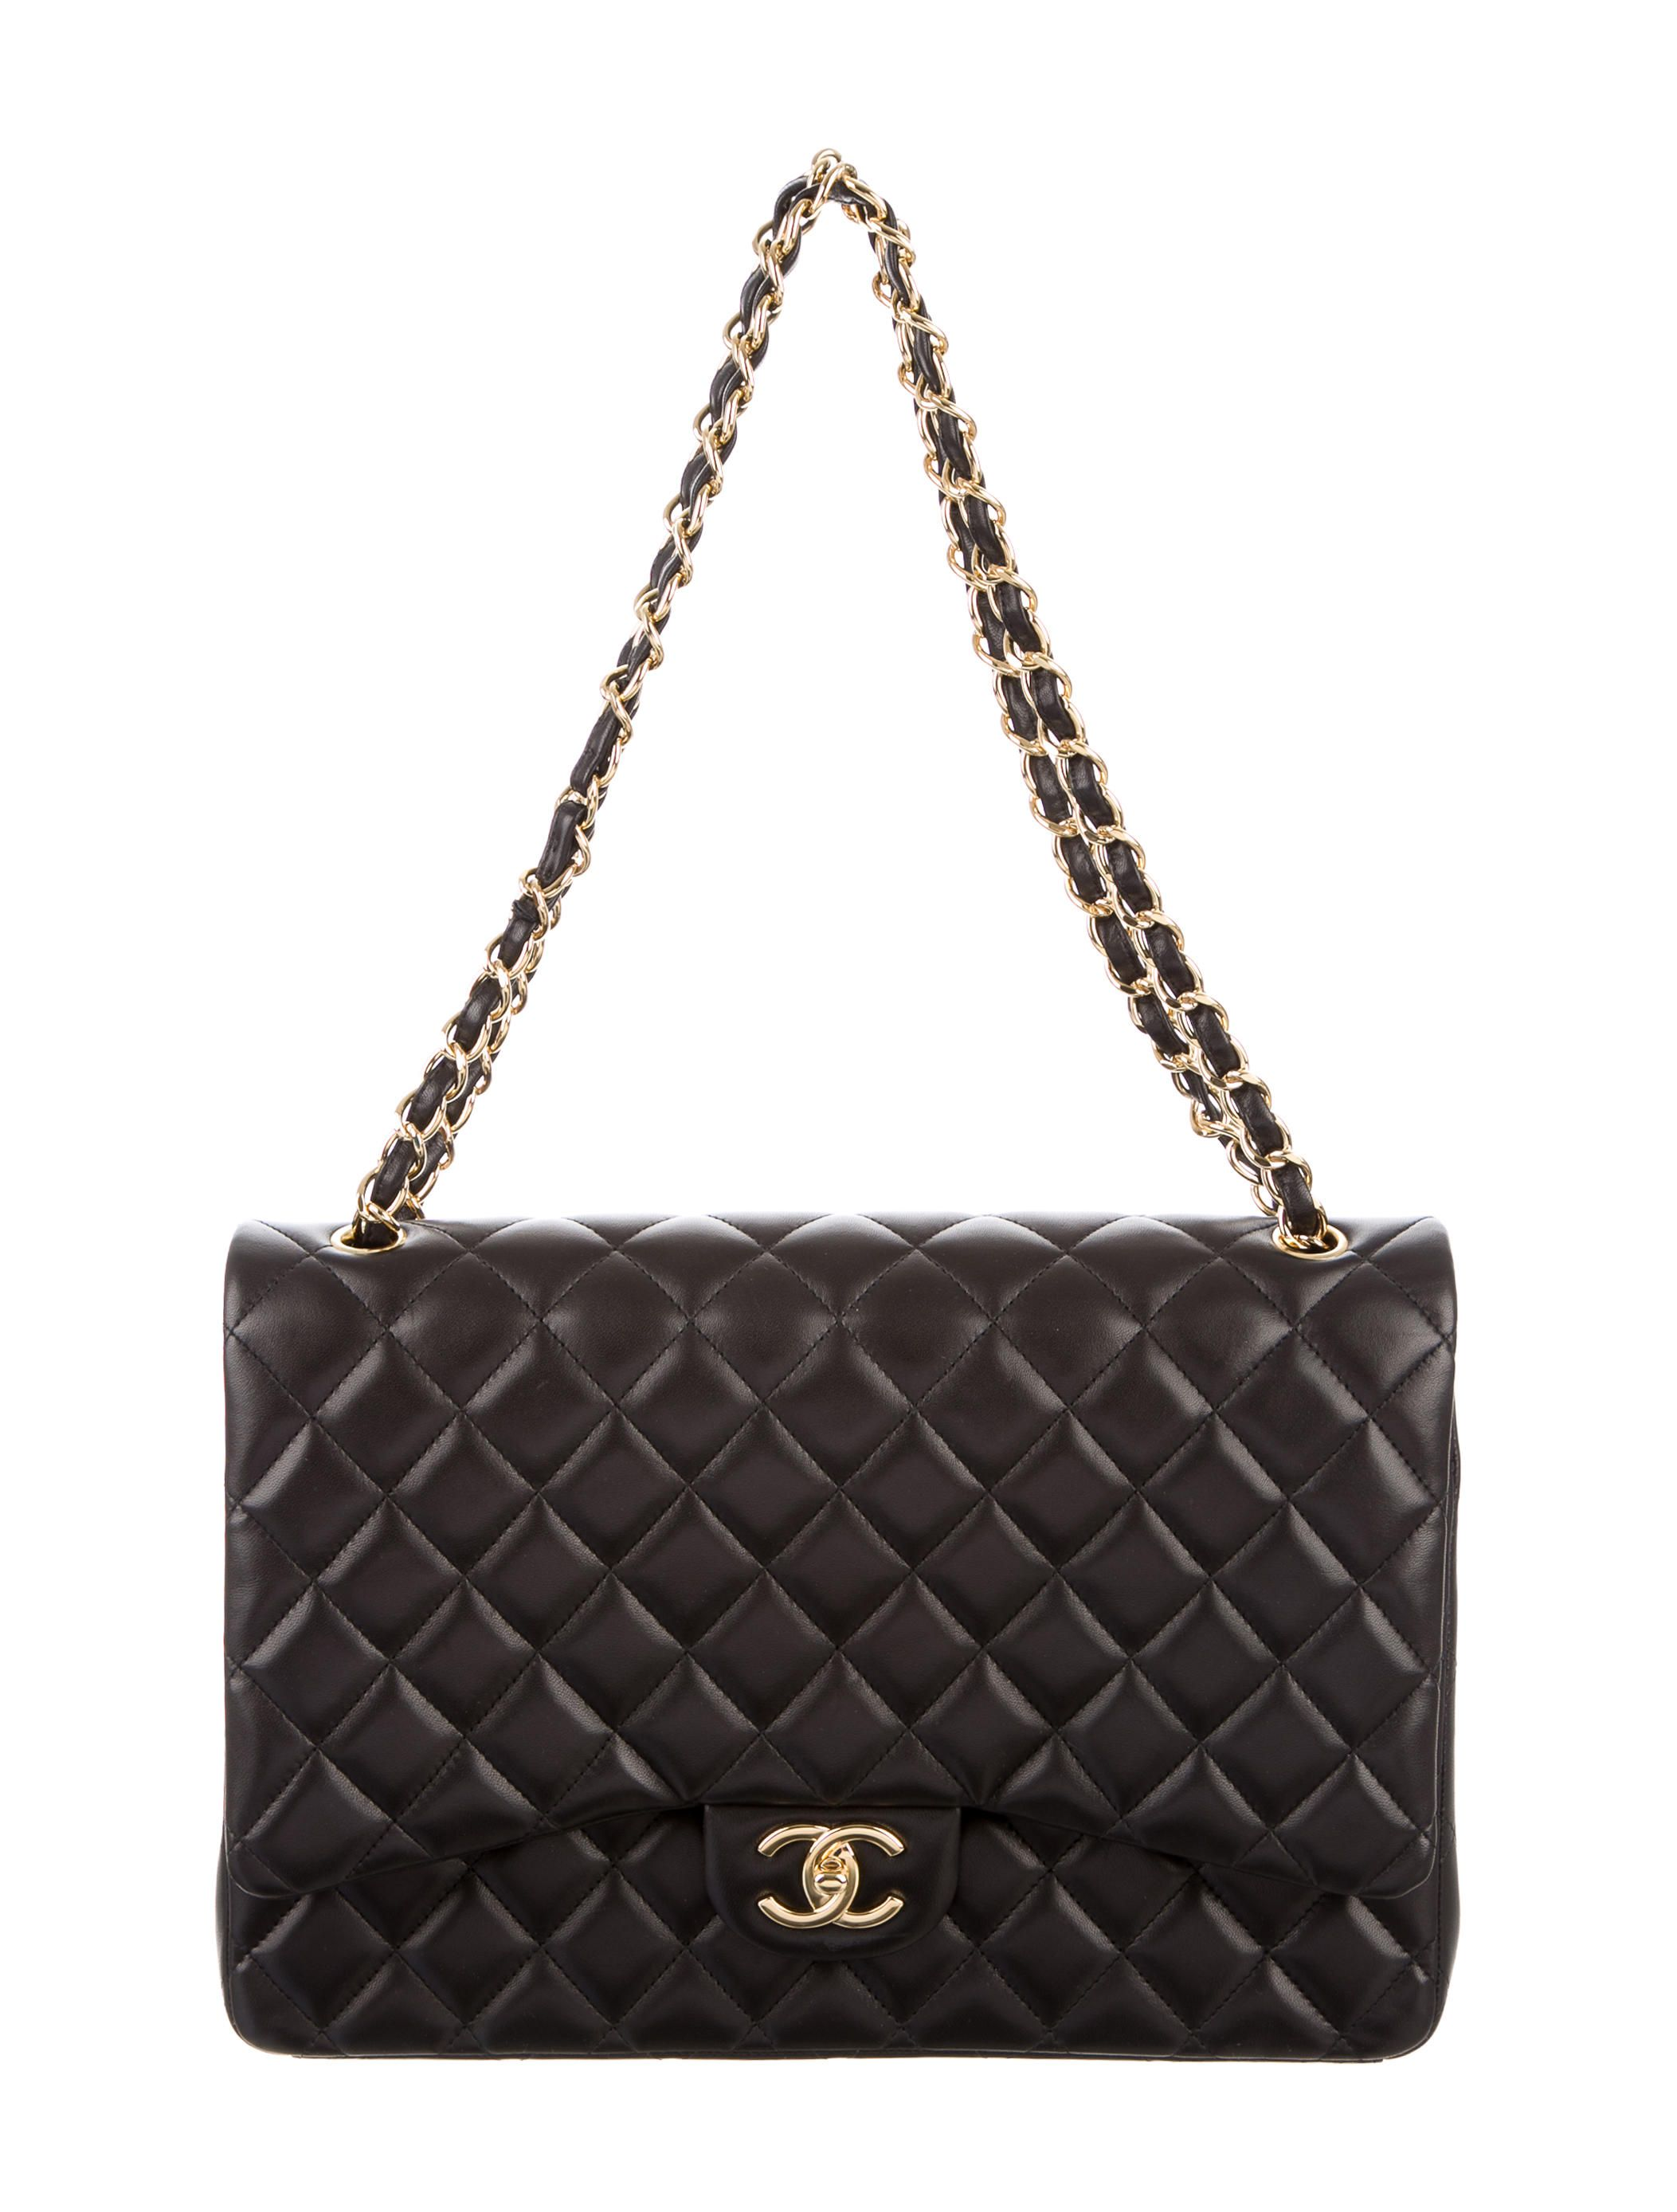 8ae3ec9e29ef Black quilted lambskin Chanel Classic Maxi Flap bag with gold-tone  hardware, single shoulder strap with chain-link and leather accents, single  slit pocket ...